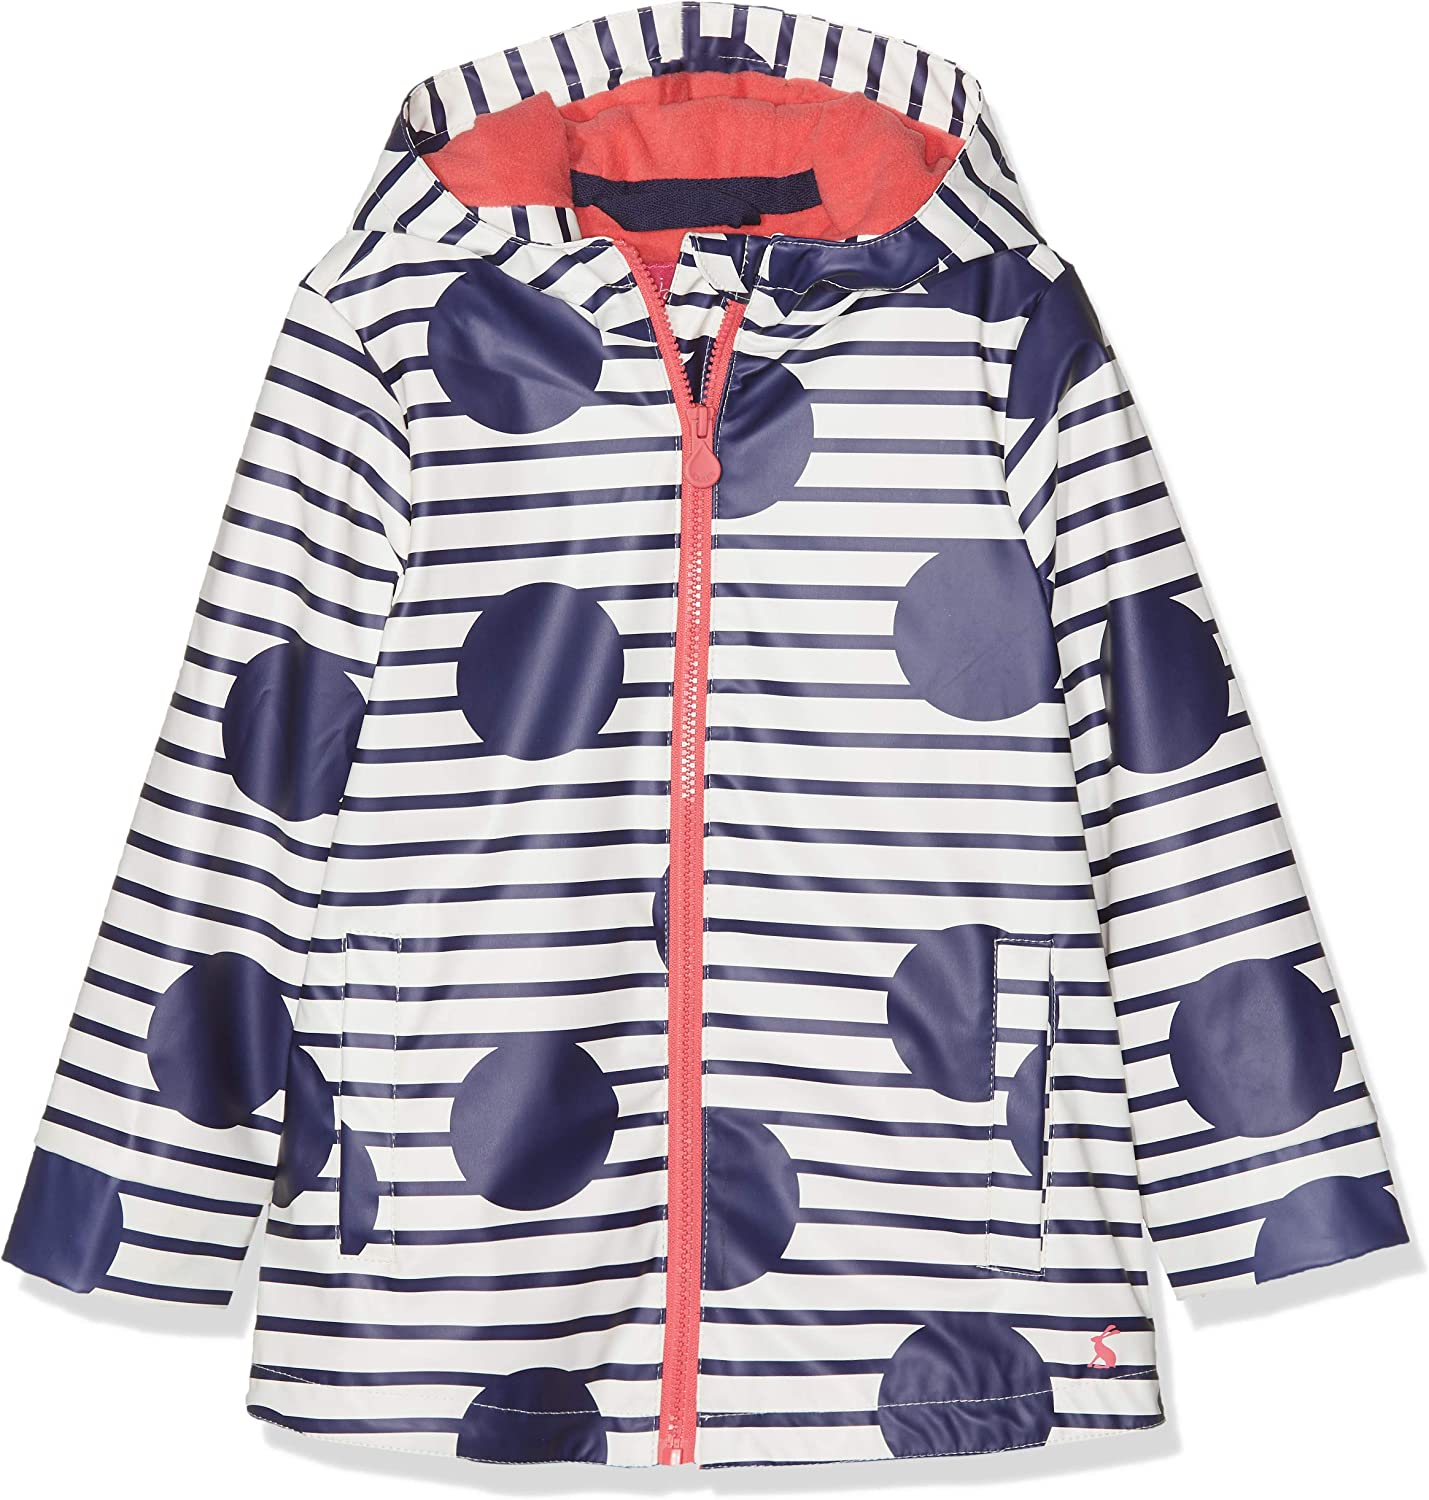 Joules Waterproof Rubber Coat  Yellow Floral